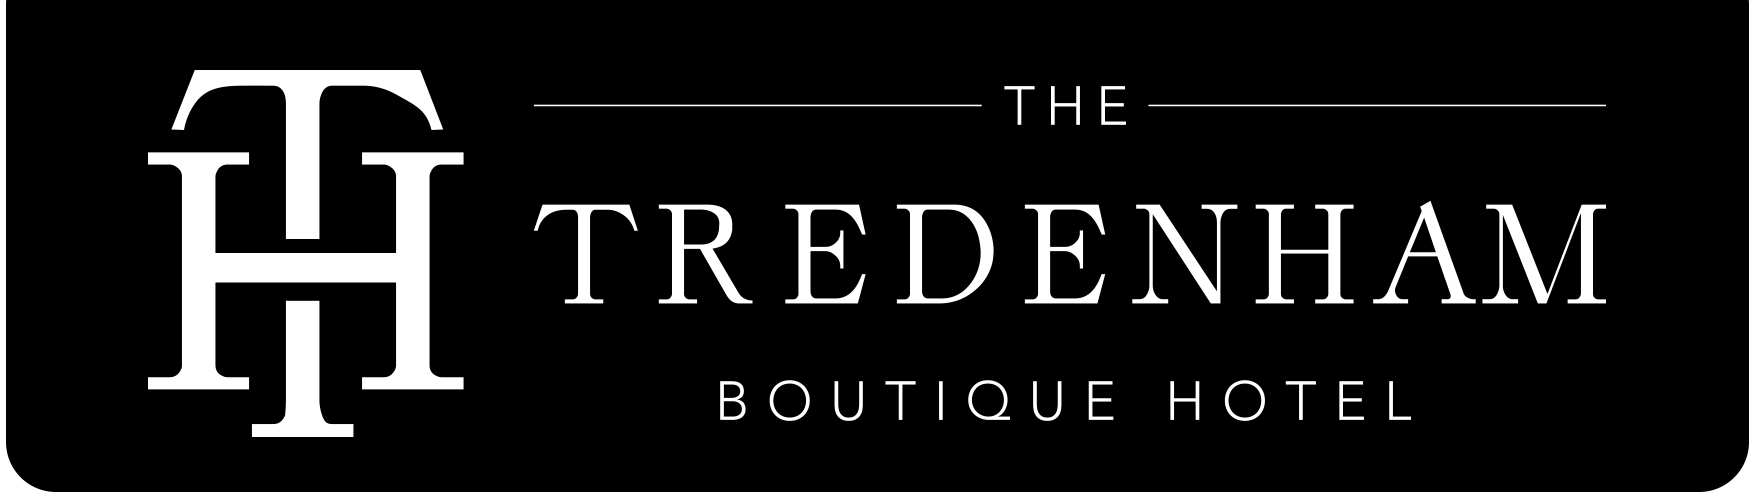 The Tredenham Boutique Hotel